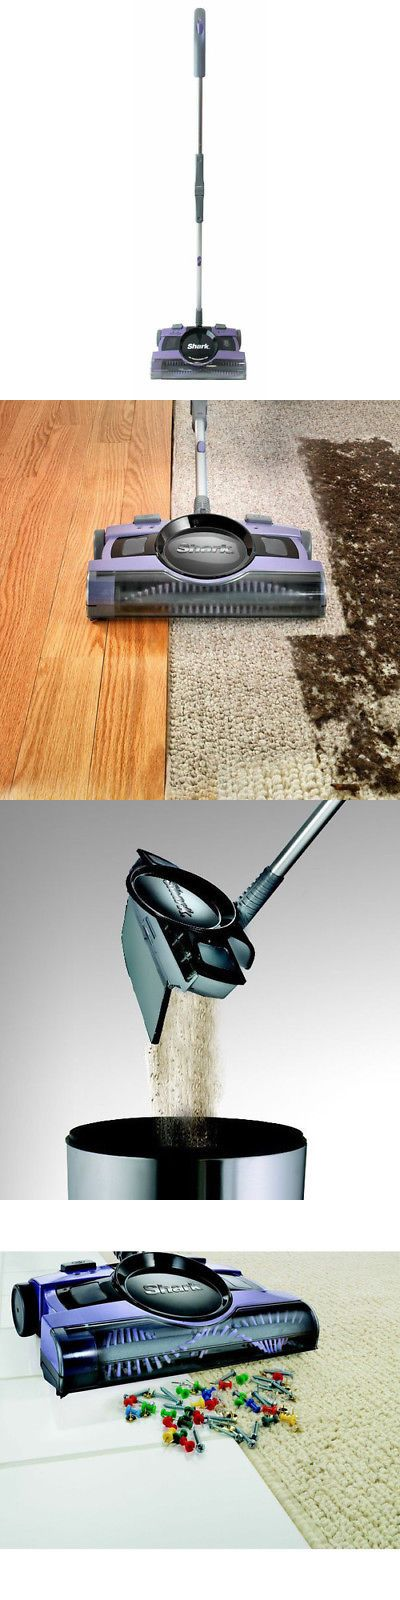 Vacuum Cleaners 20614: Shark 13 In. Rechargeable Floor And Carpet Sweeper V2950 New -> BUY IT NOW ONLY: $69.99 on eBay!